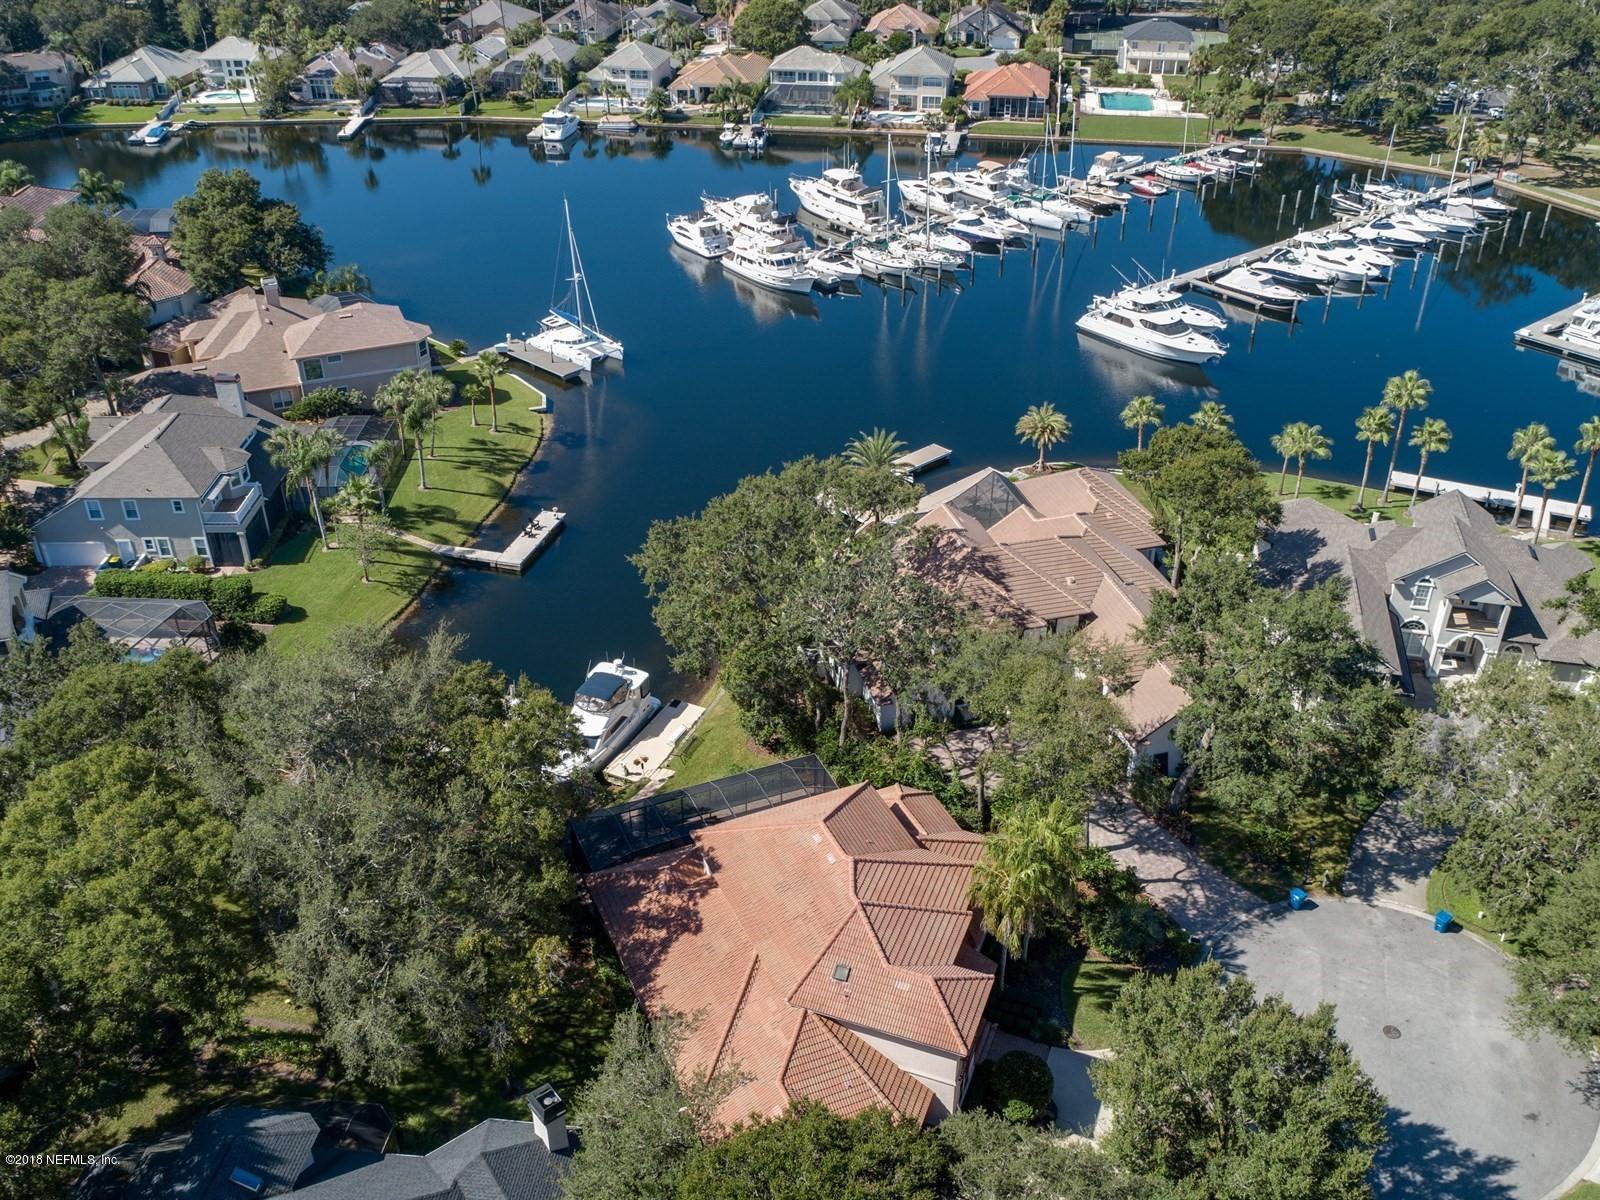 13758 CLUB COVE, JACKSONVILLE, FLORIDA 32225, 4 Bedrooms Bedrooms, ,4 BathroomsBathrooms,Residential - single family,For sale,CLUB COVE,963055